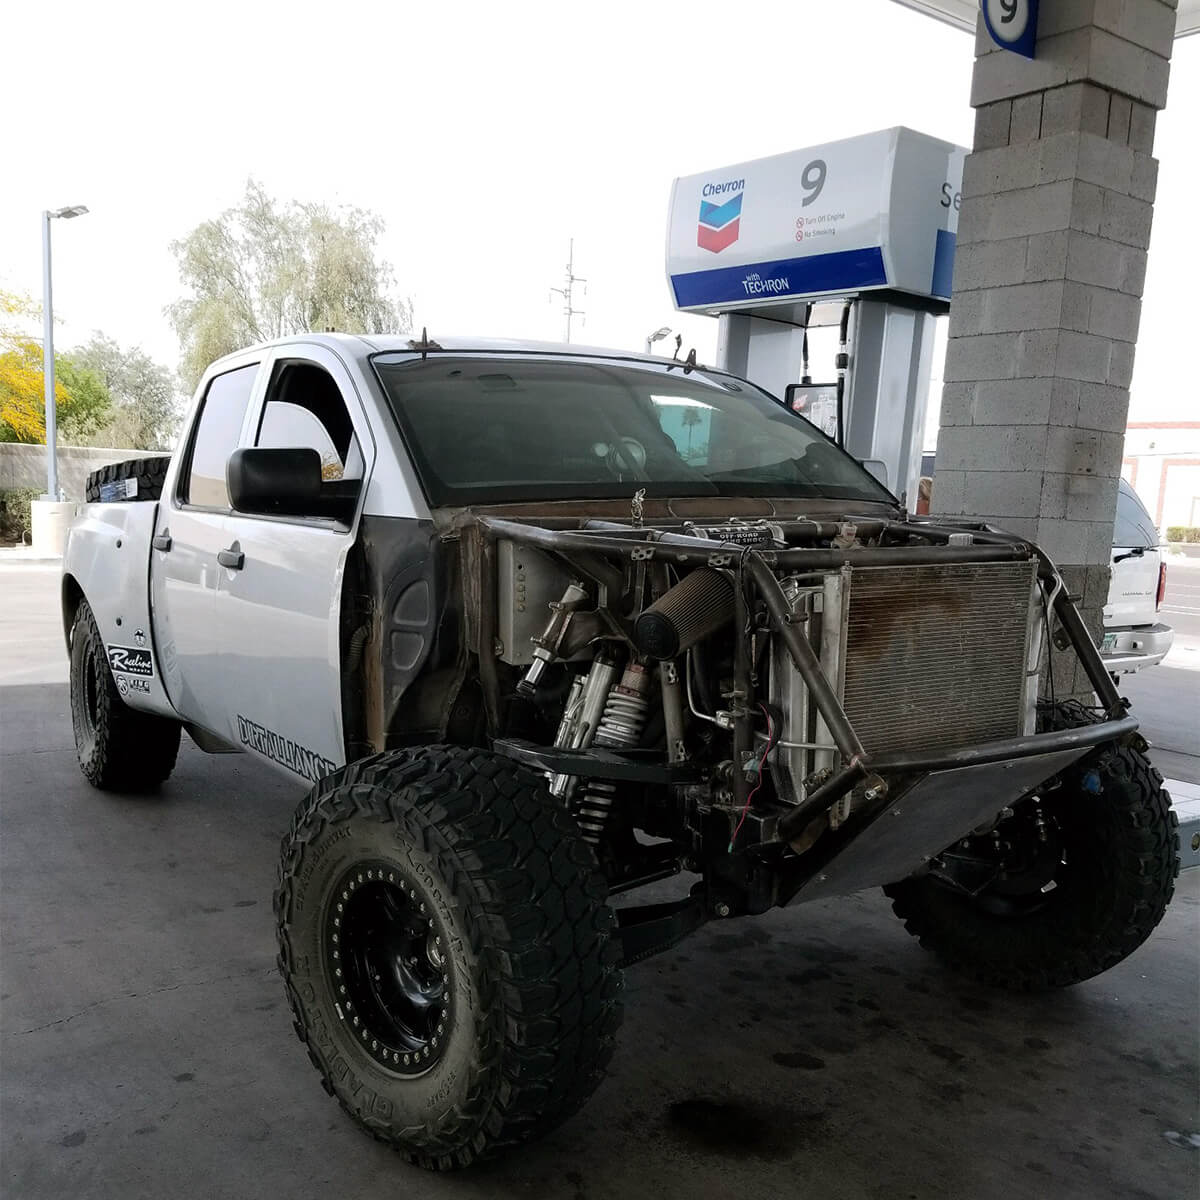 Nissan Titan Pre runner fully custom front end with long travel suspension setup